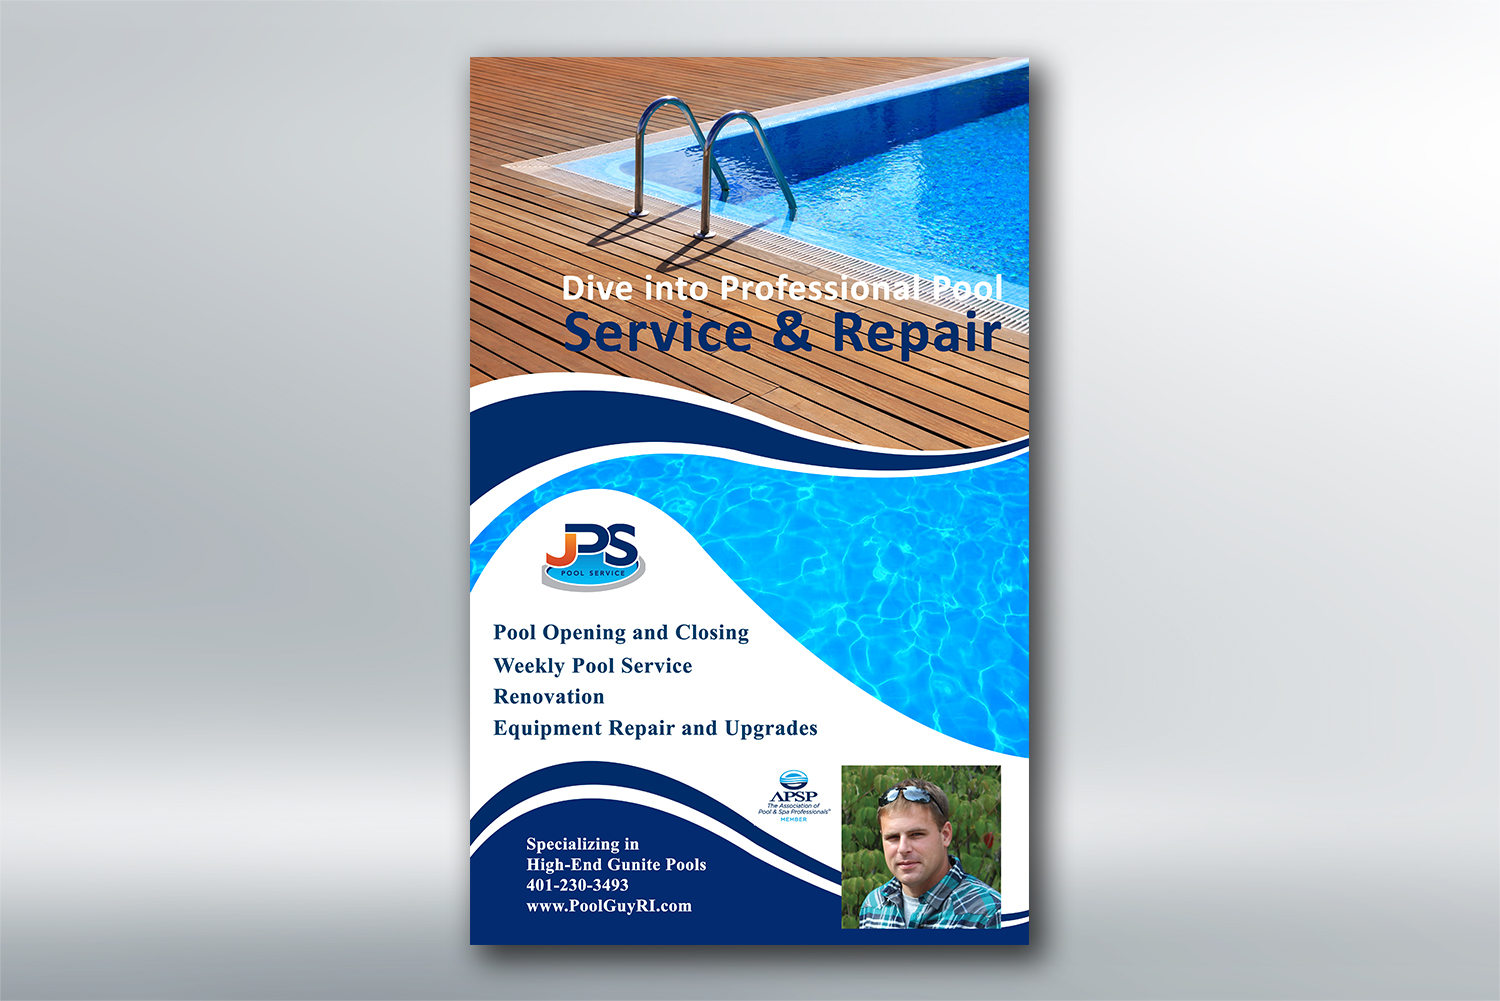 Elegant, Serious Newspaper Ad Design for JPS POOL SERVICE by